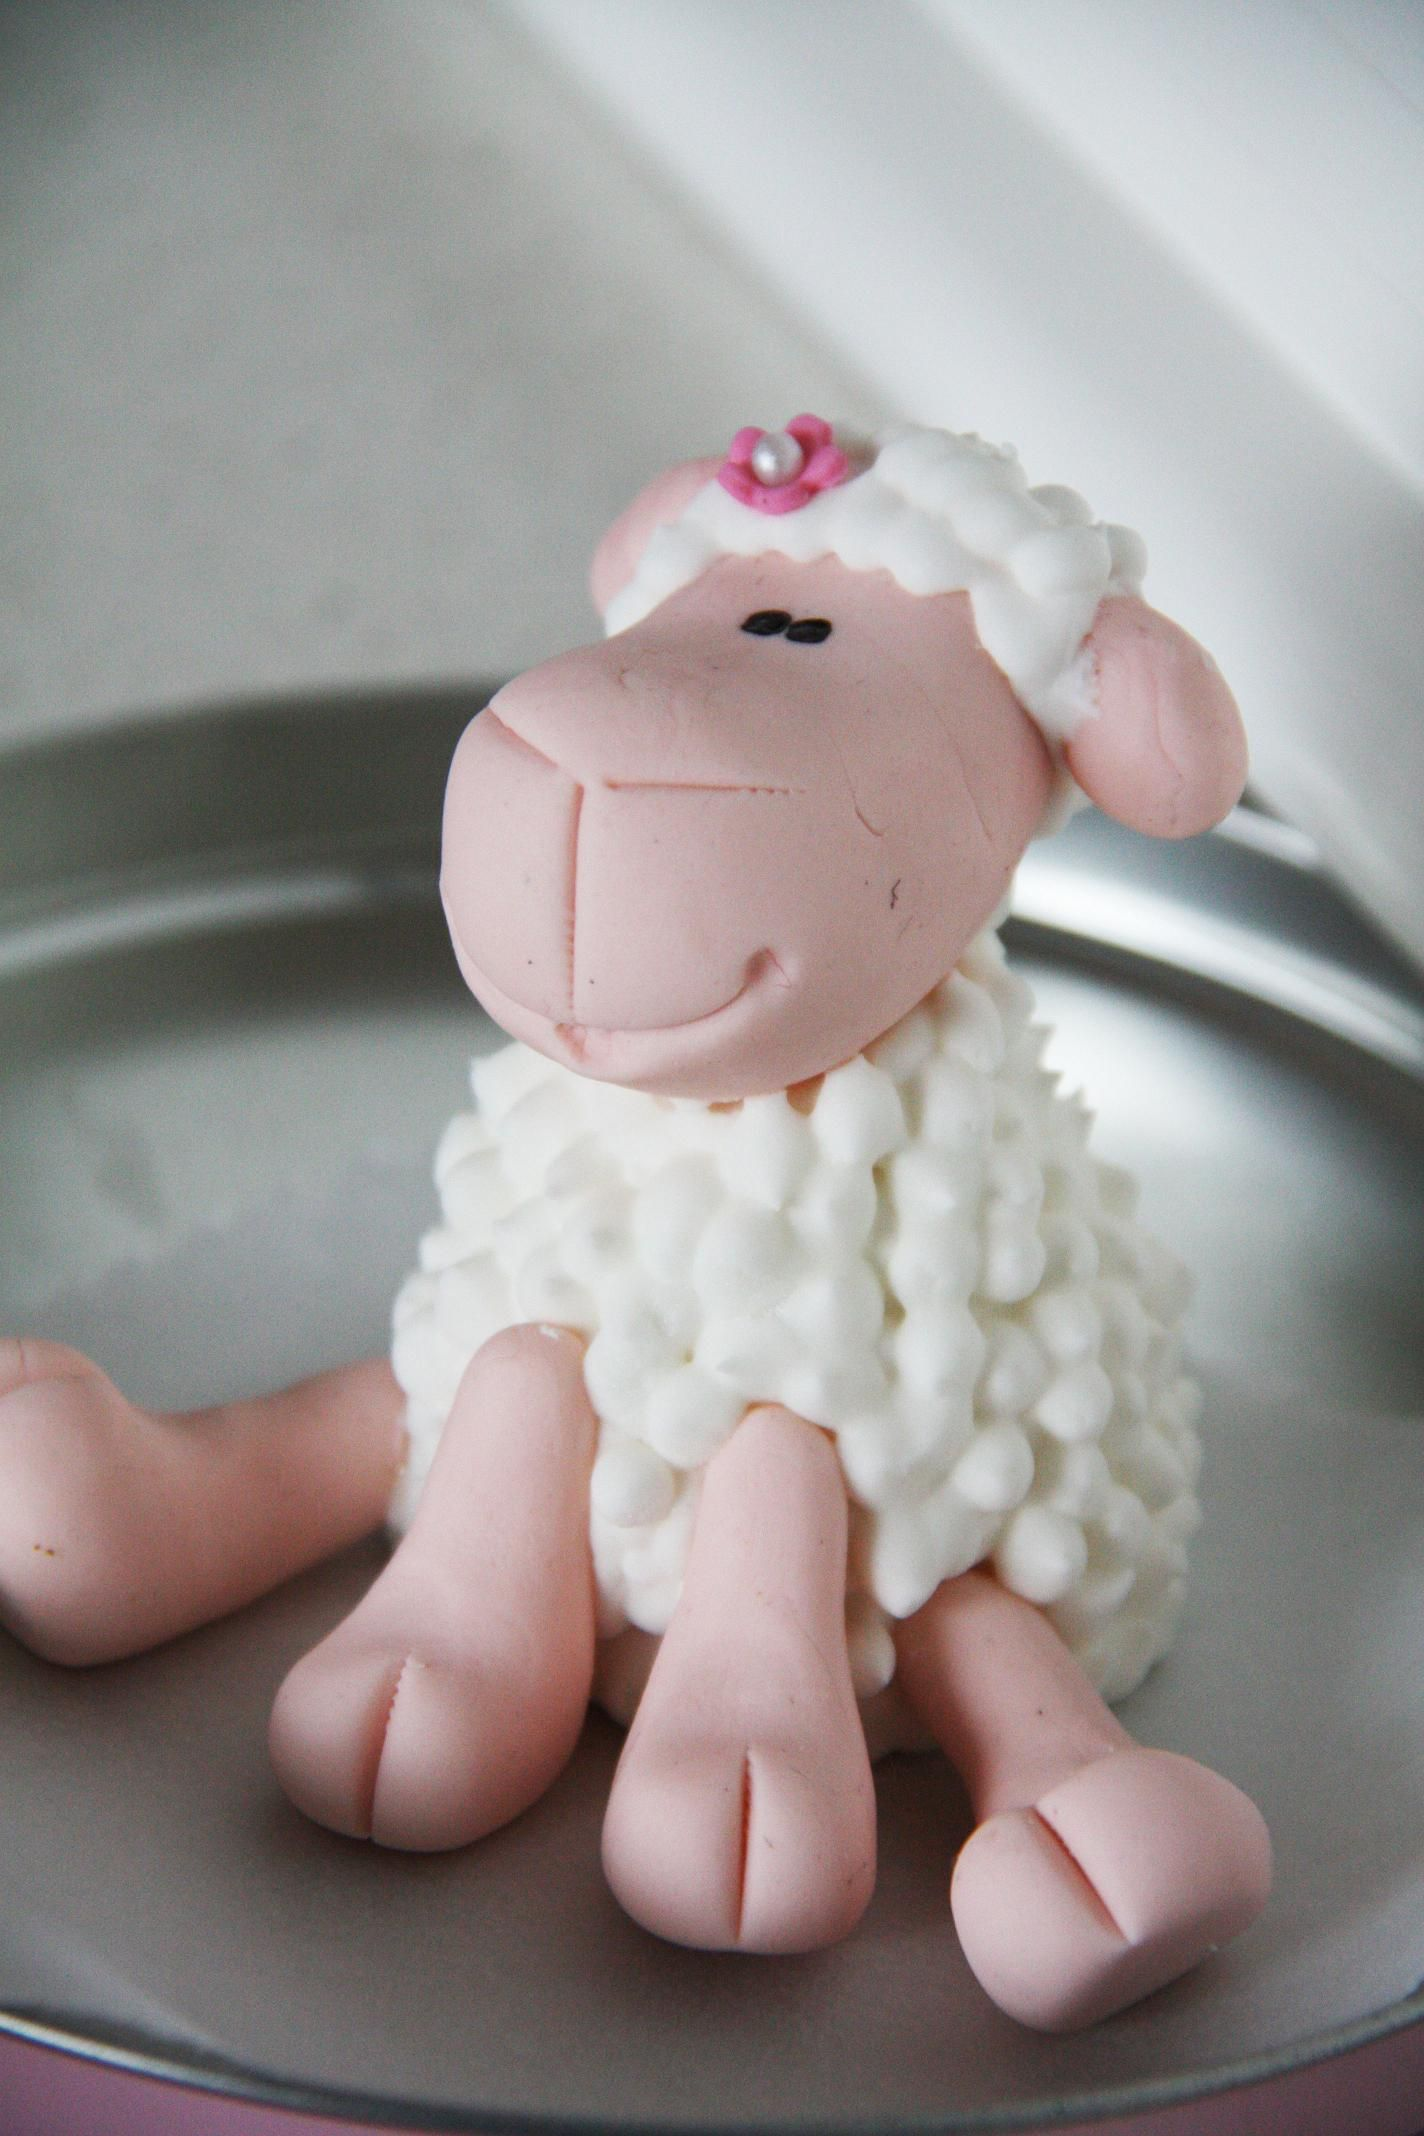 Kuchen Deko Pferd Fondant Sheep Picture Cakepins Fondant Figuren In